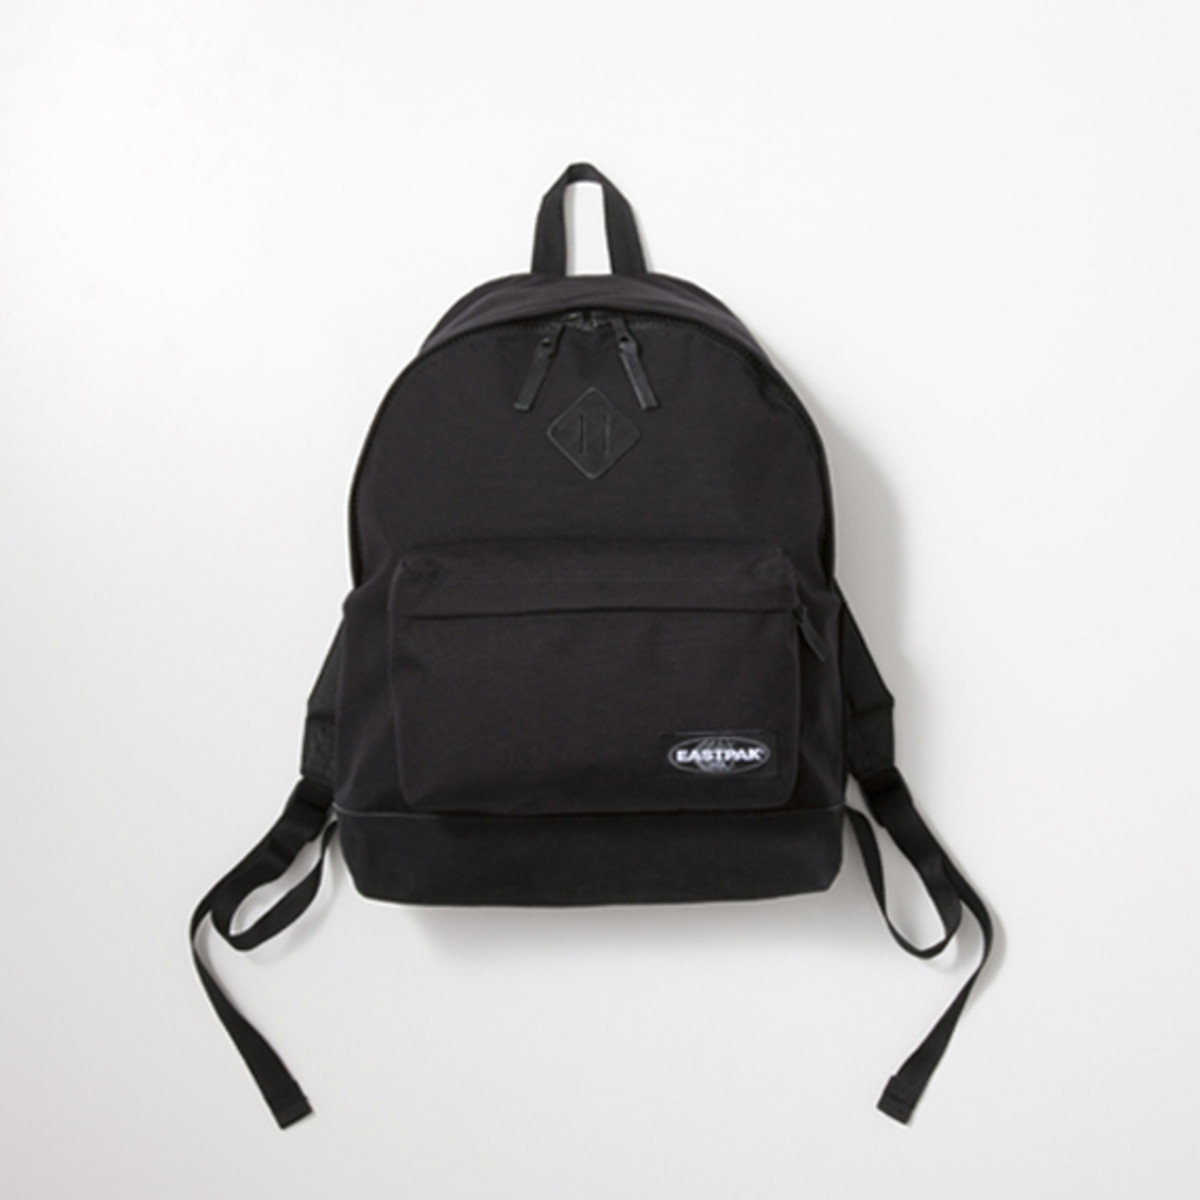 Authentic Woodstock Backpack Black